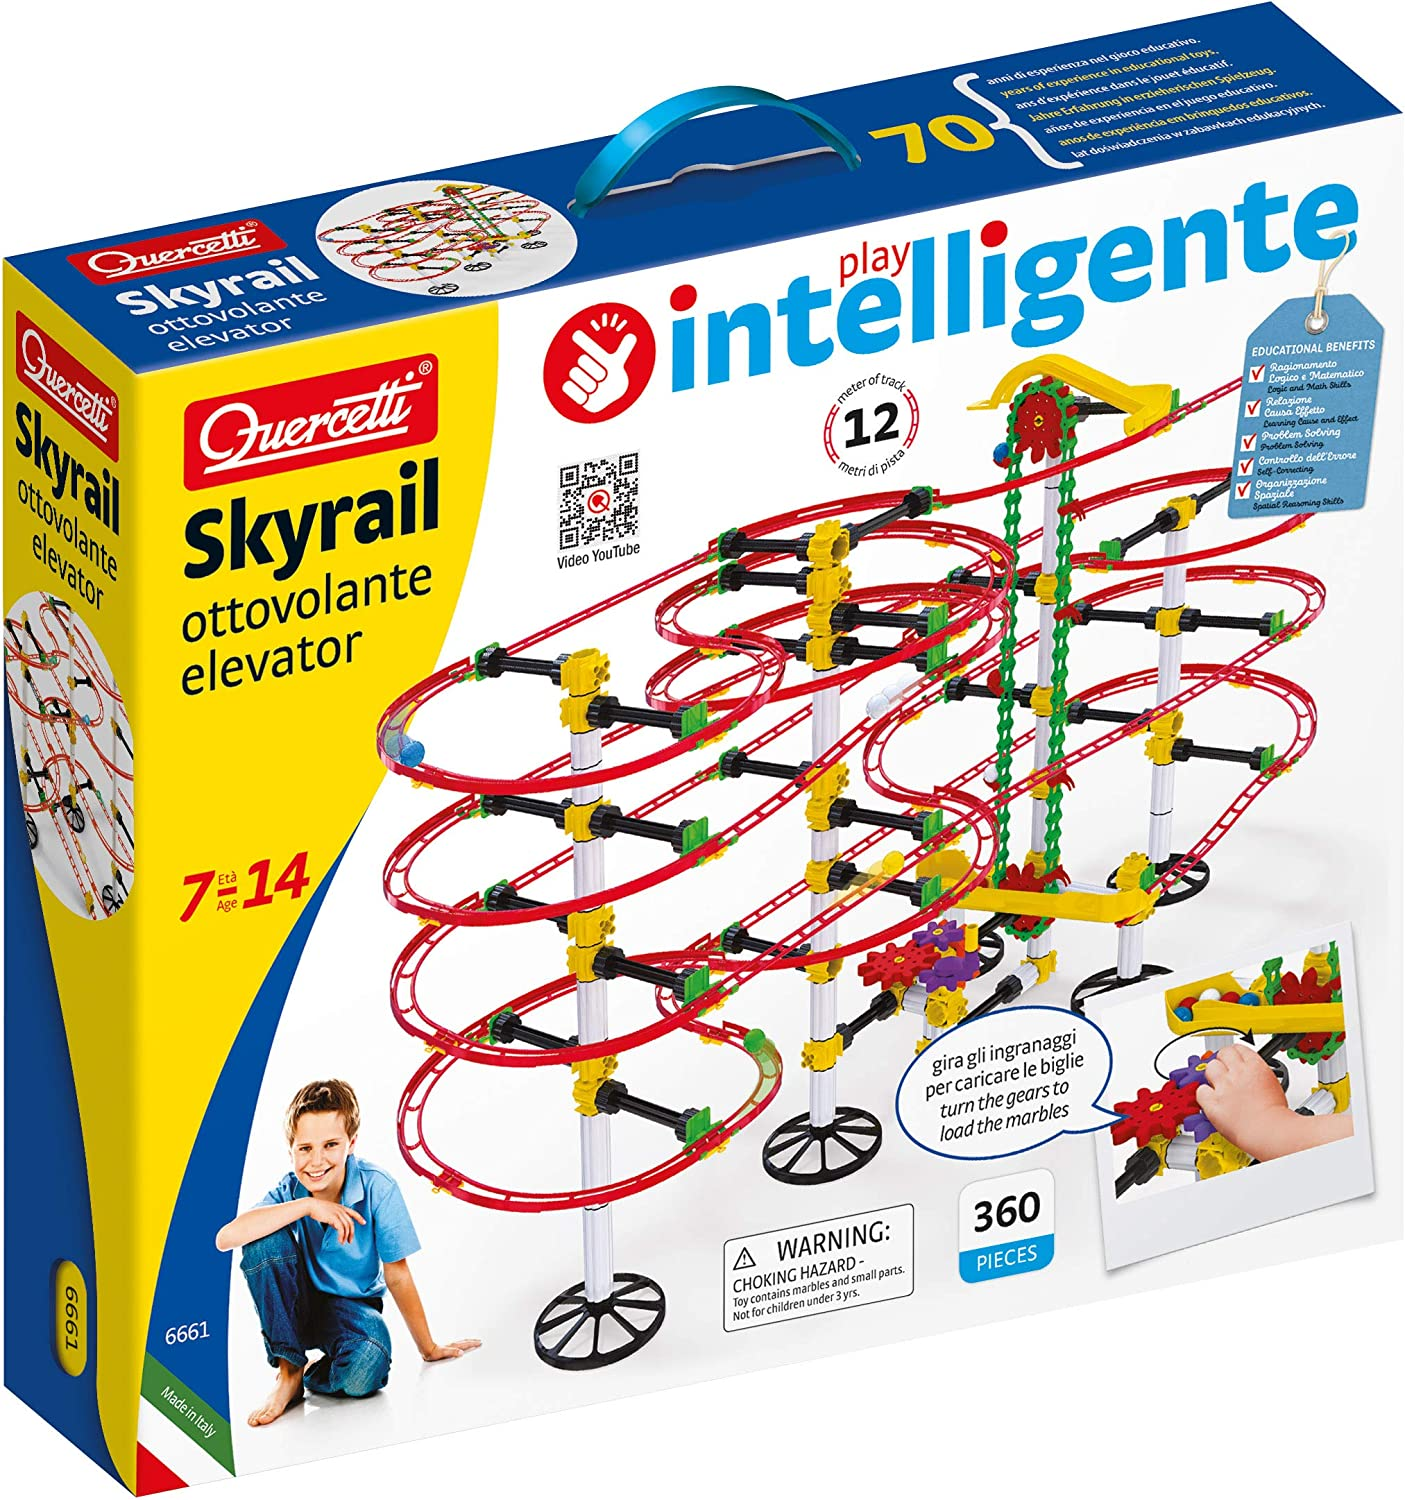 Quercetti Ranking integrated 1st place San Jose Mall Skyrail Ottovolante Elevator marbl Pieces 360 Playset